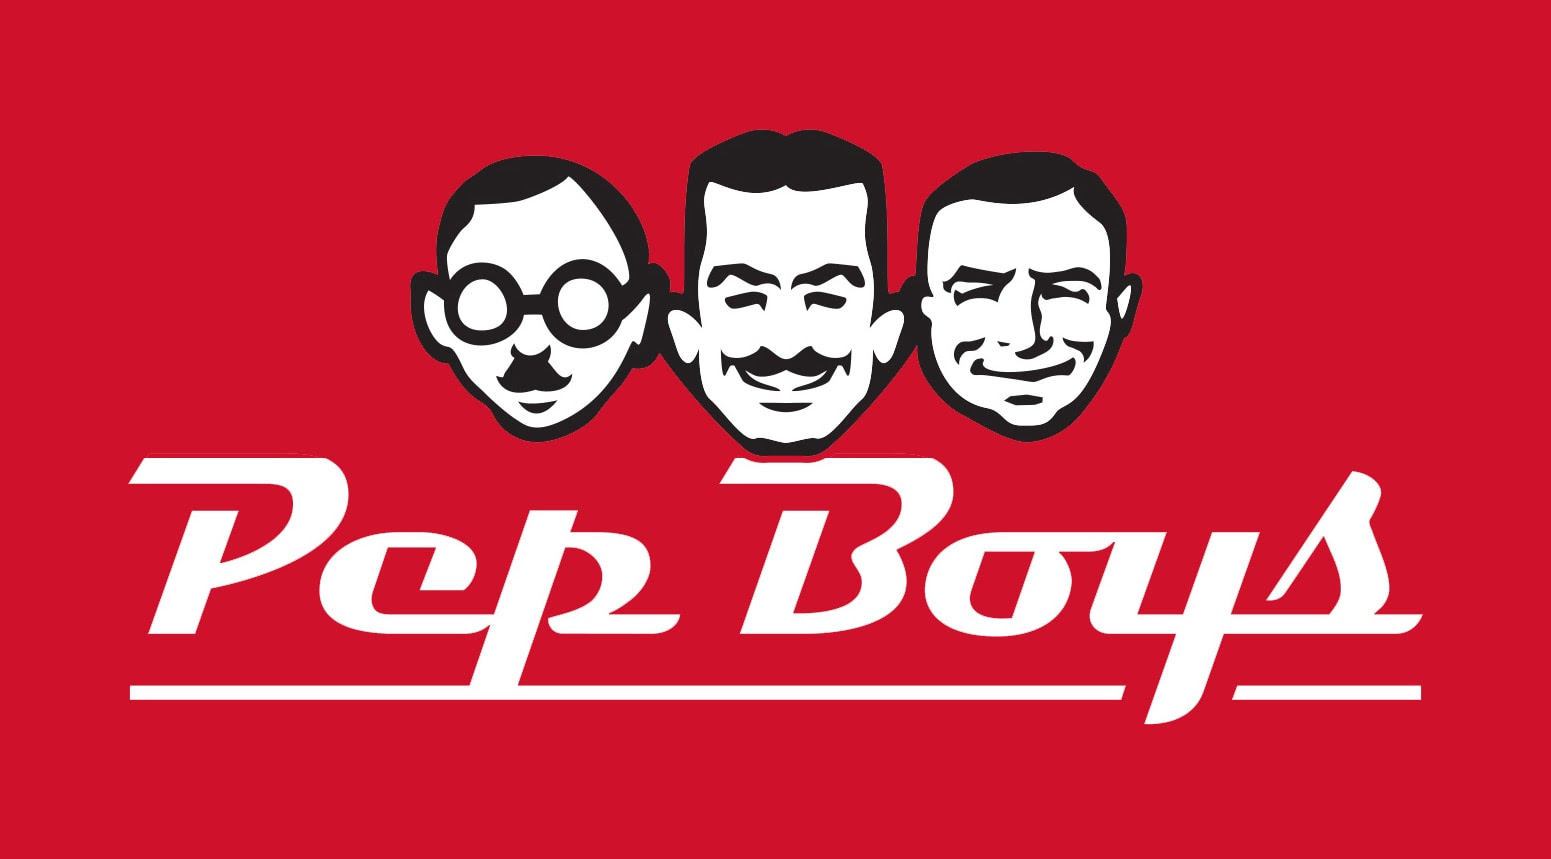 You will find that Pep Boys offers a number of different tires in a variety of brands, including BFGoodrich, Continental, Cooper Tires, Falken, Michelin, Hankook, General Tire, Carlisle, Pirelli, Maxxis Tires, Mickey Thompson, Kumho Tires, and Nitto.